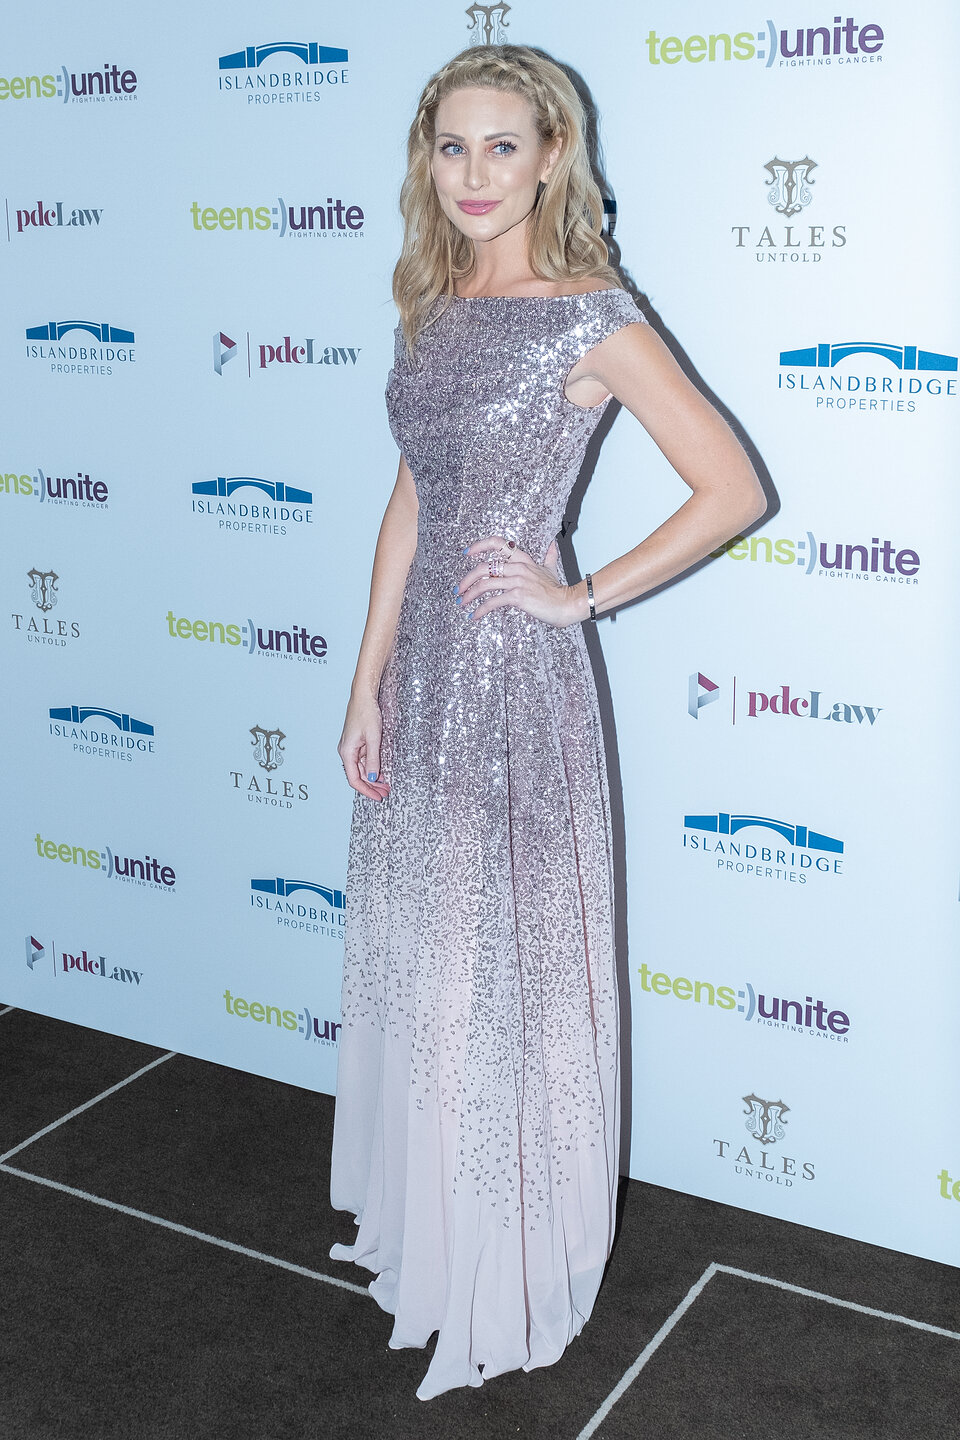 Teens Unite Gala at the Rosewood London 2019